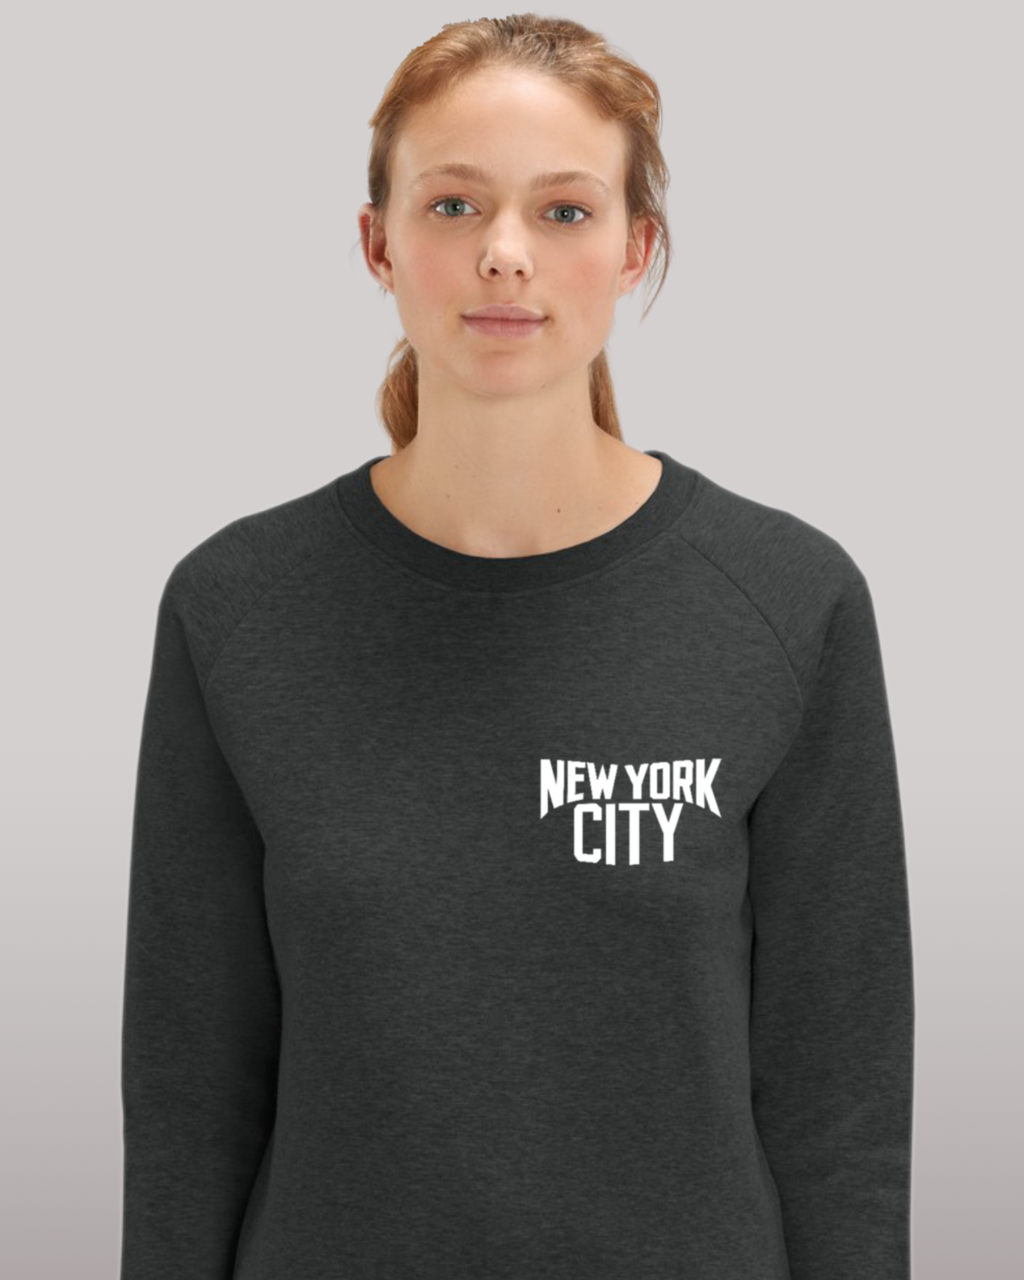 New York City Pocket Print Sweatshirt